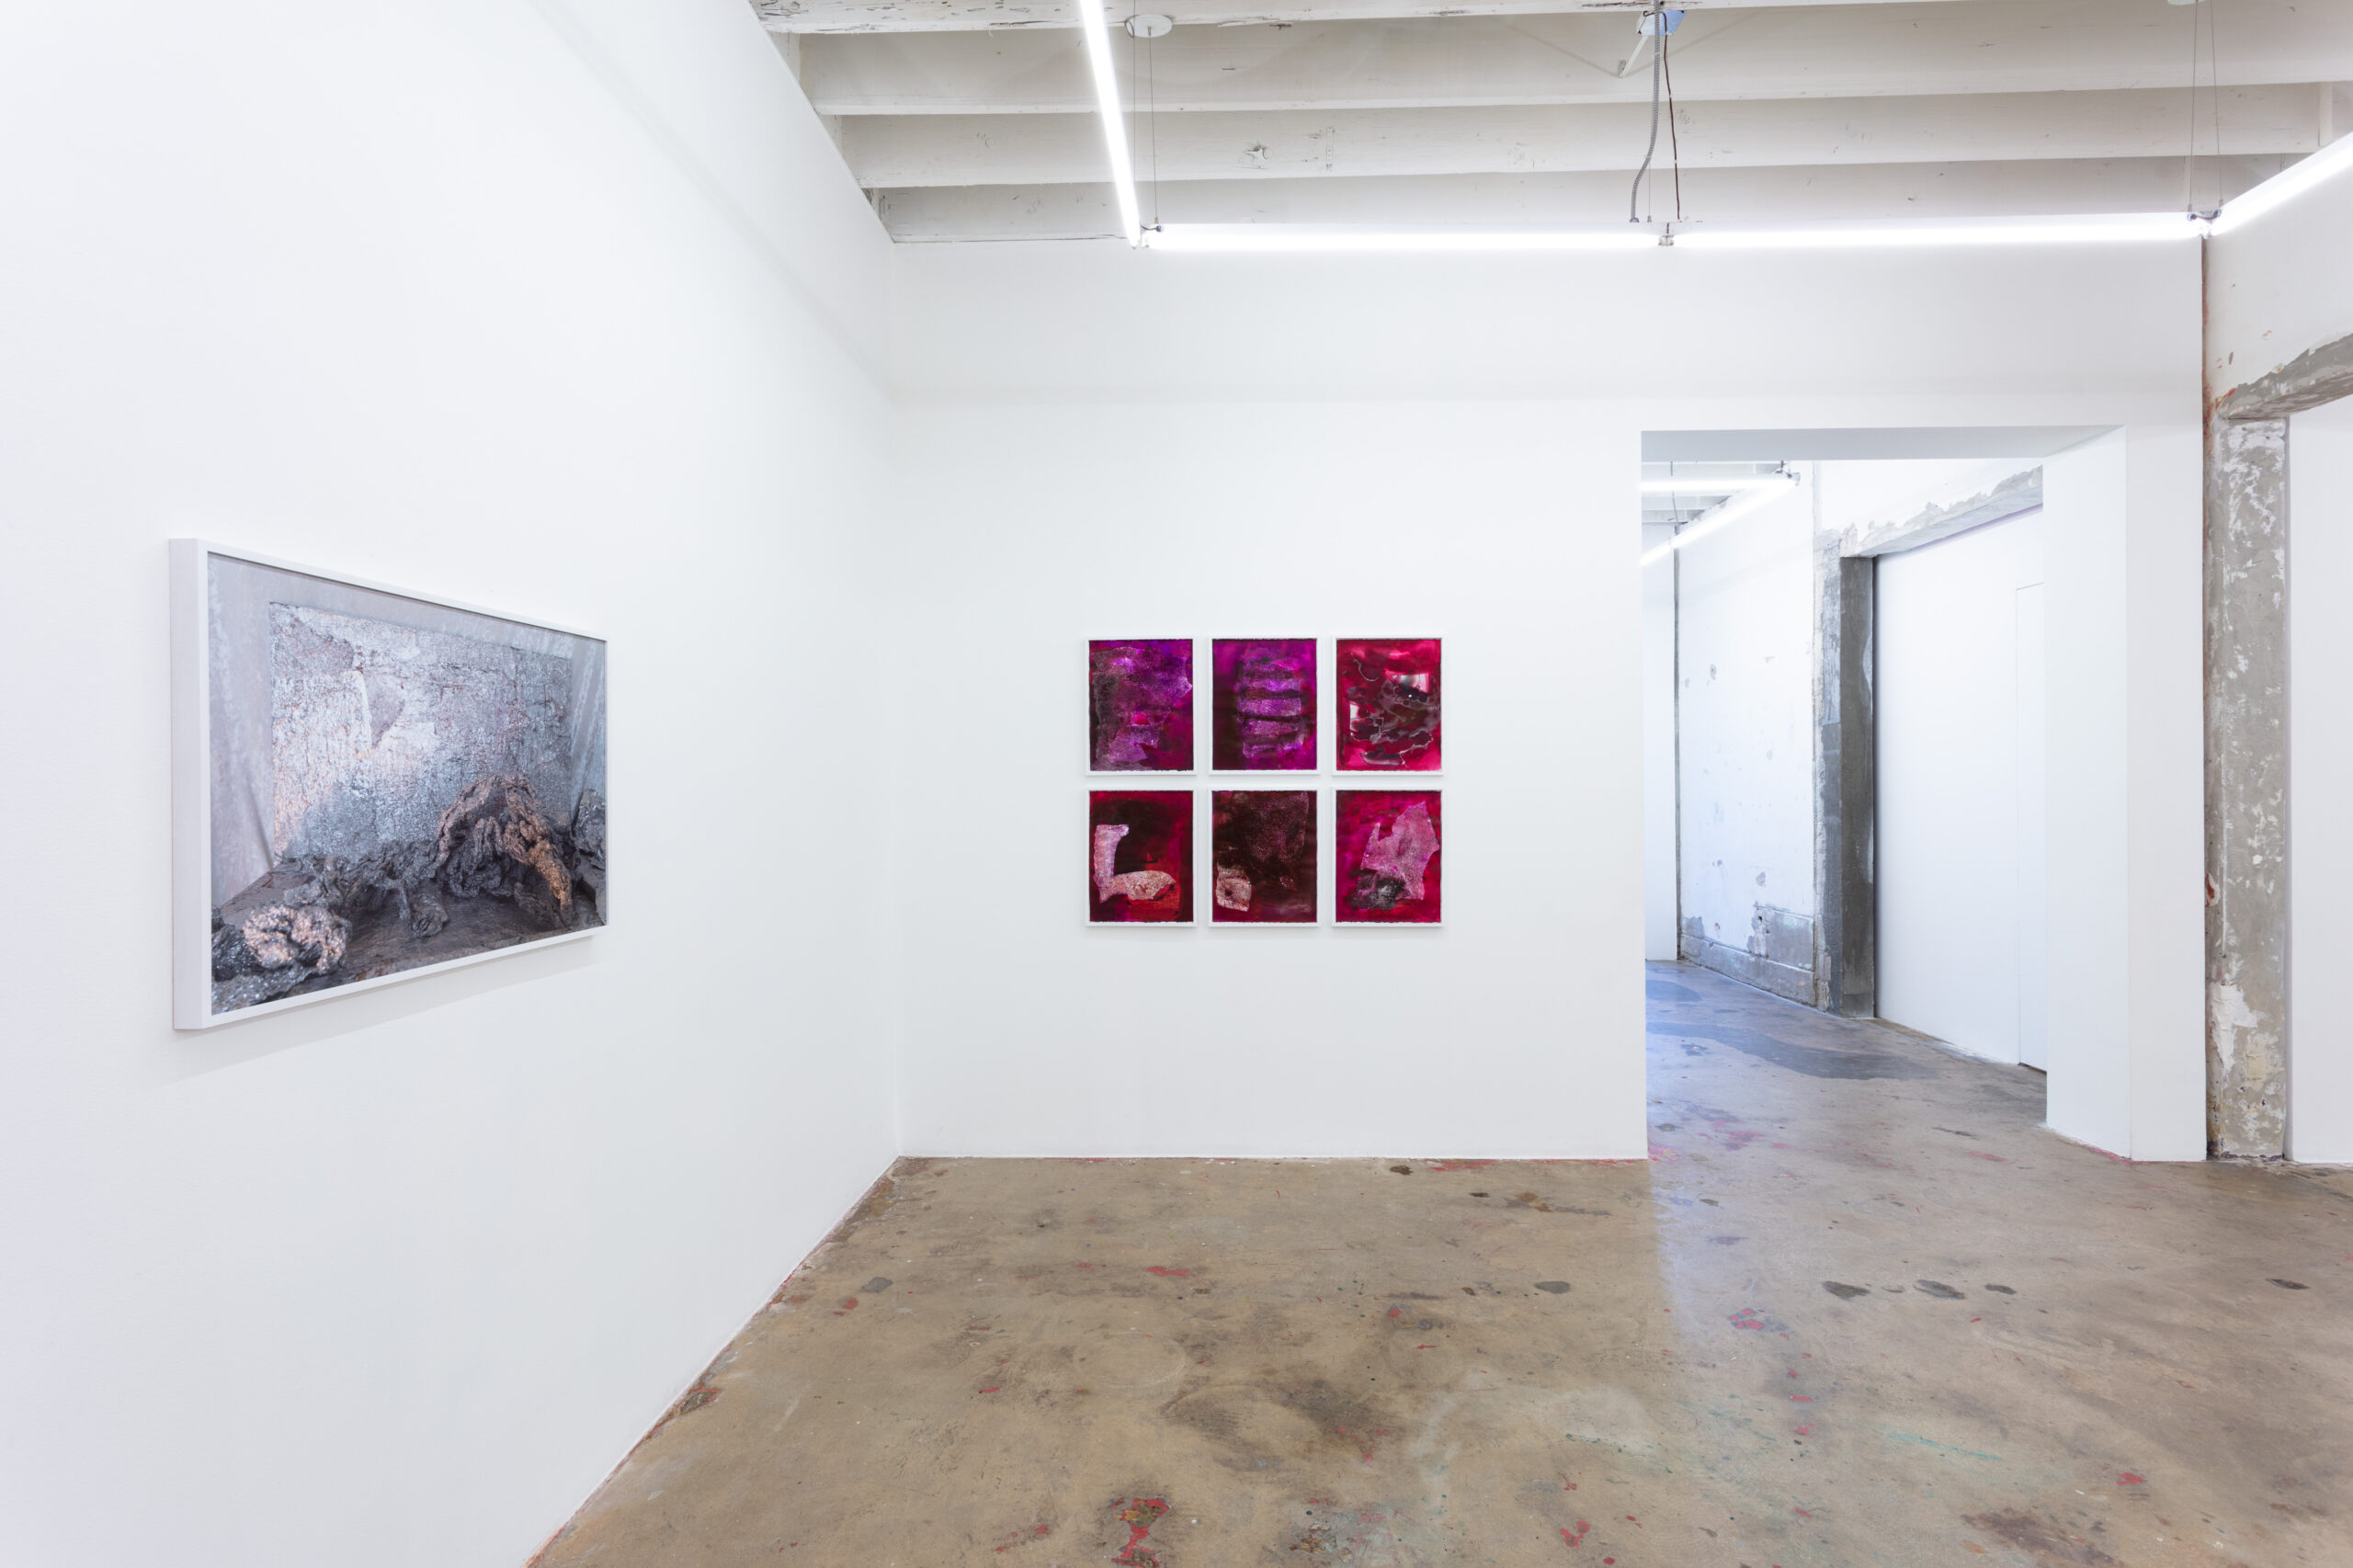 Anna Betbeze, Forms Like Dreams, installation view